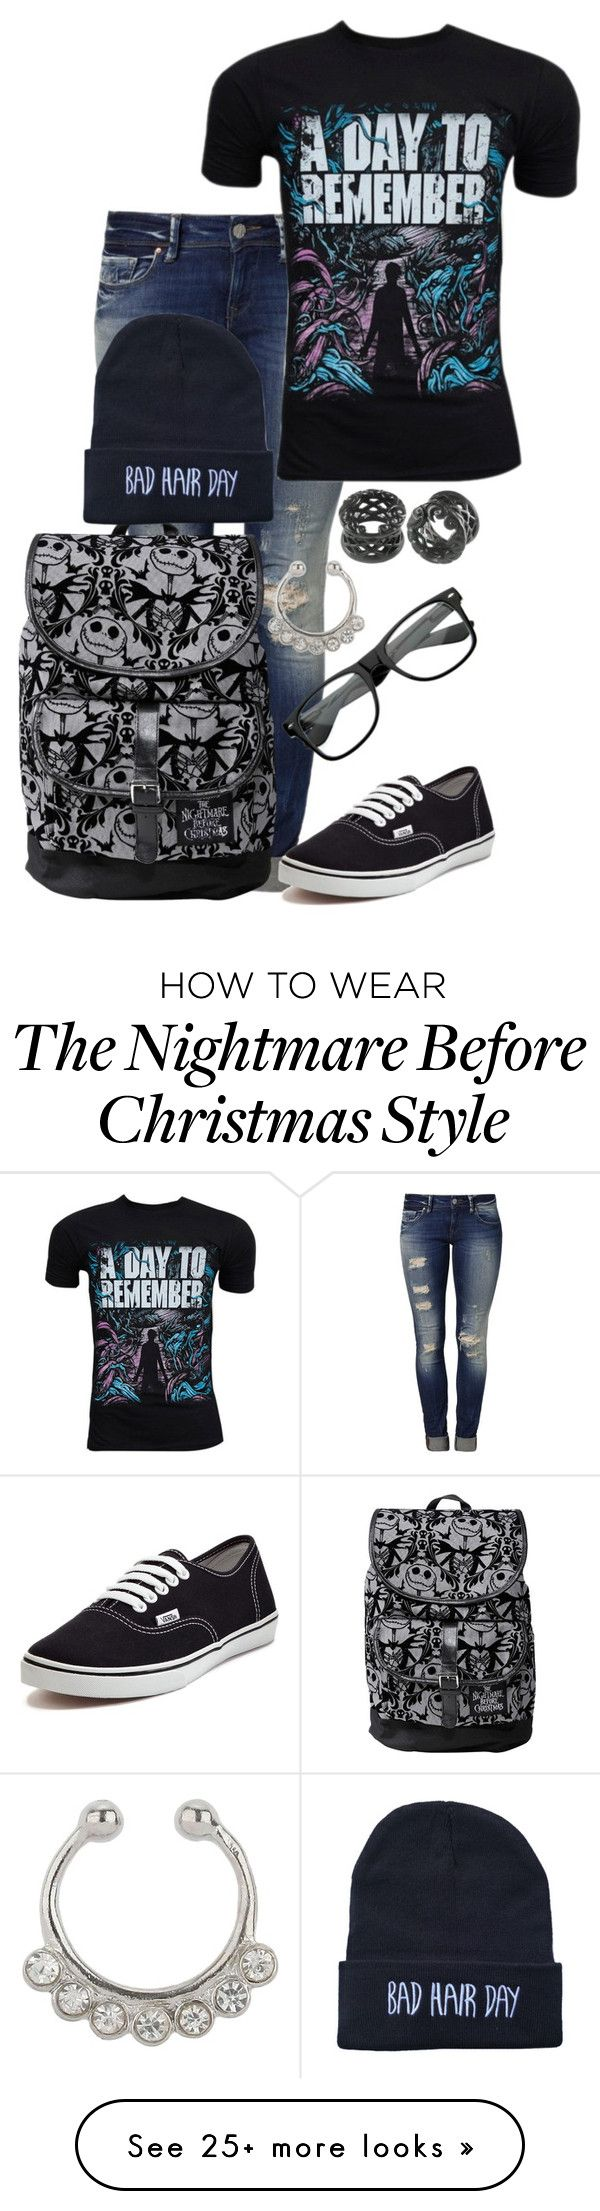 """On the bright side...MY BULLET CLUB HOODIE JUST SHIPPED ASDFGHJKL"" by digital-minerva on Polyvore featuring Mavi, Retrò, Vans, Disney and Miss Selfridge"